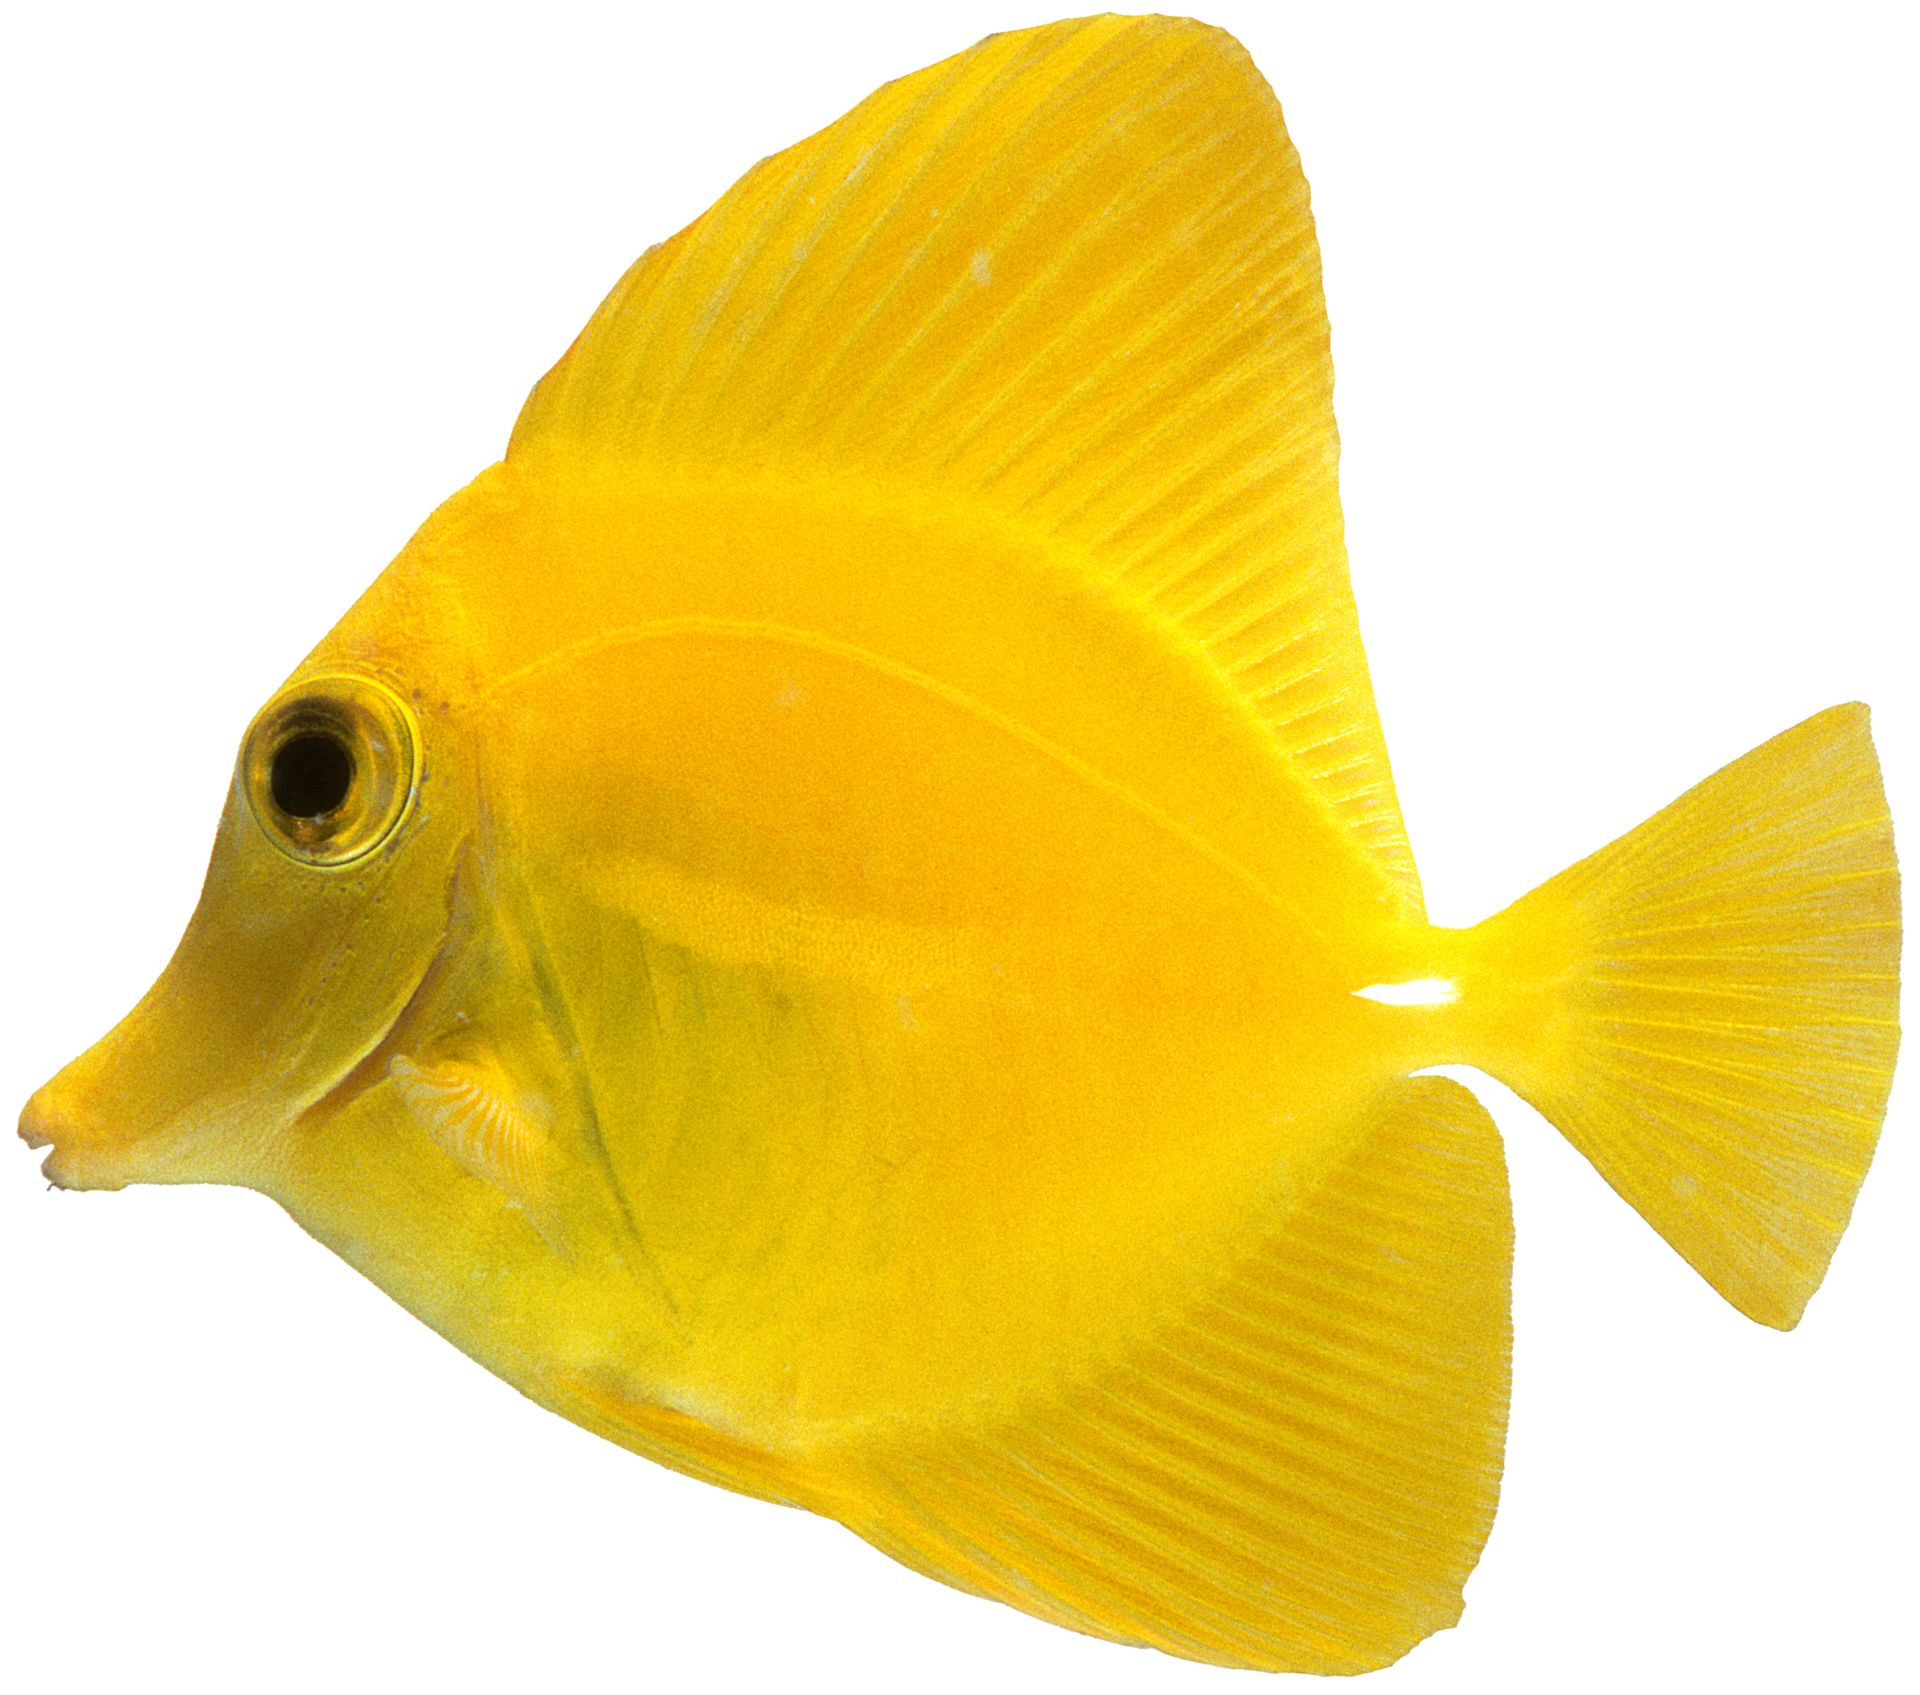 Yellow Tang | Yellow Tang Fish Facts | DK Find Out